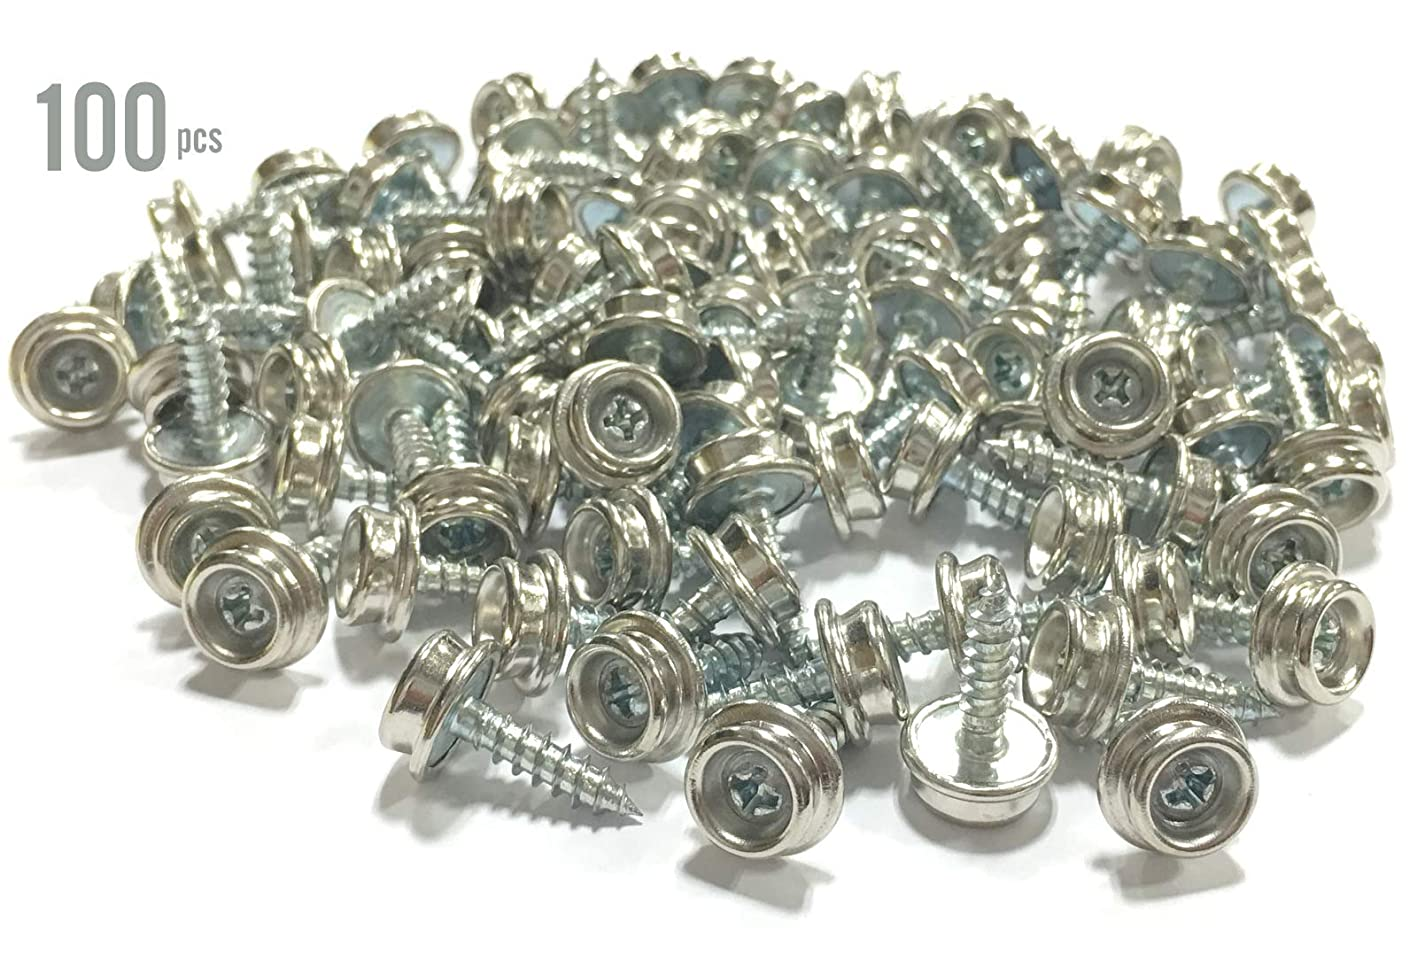 ALAZCO Set of 100 Snap Button Screw-in Studs Boat Canvas Snaps Winter Covers Canopies Tarps - All Phillips Head - Premium Quality Made in Taiwan ebdtjncsipy784